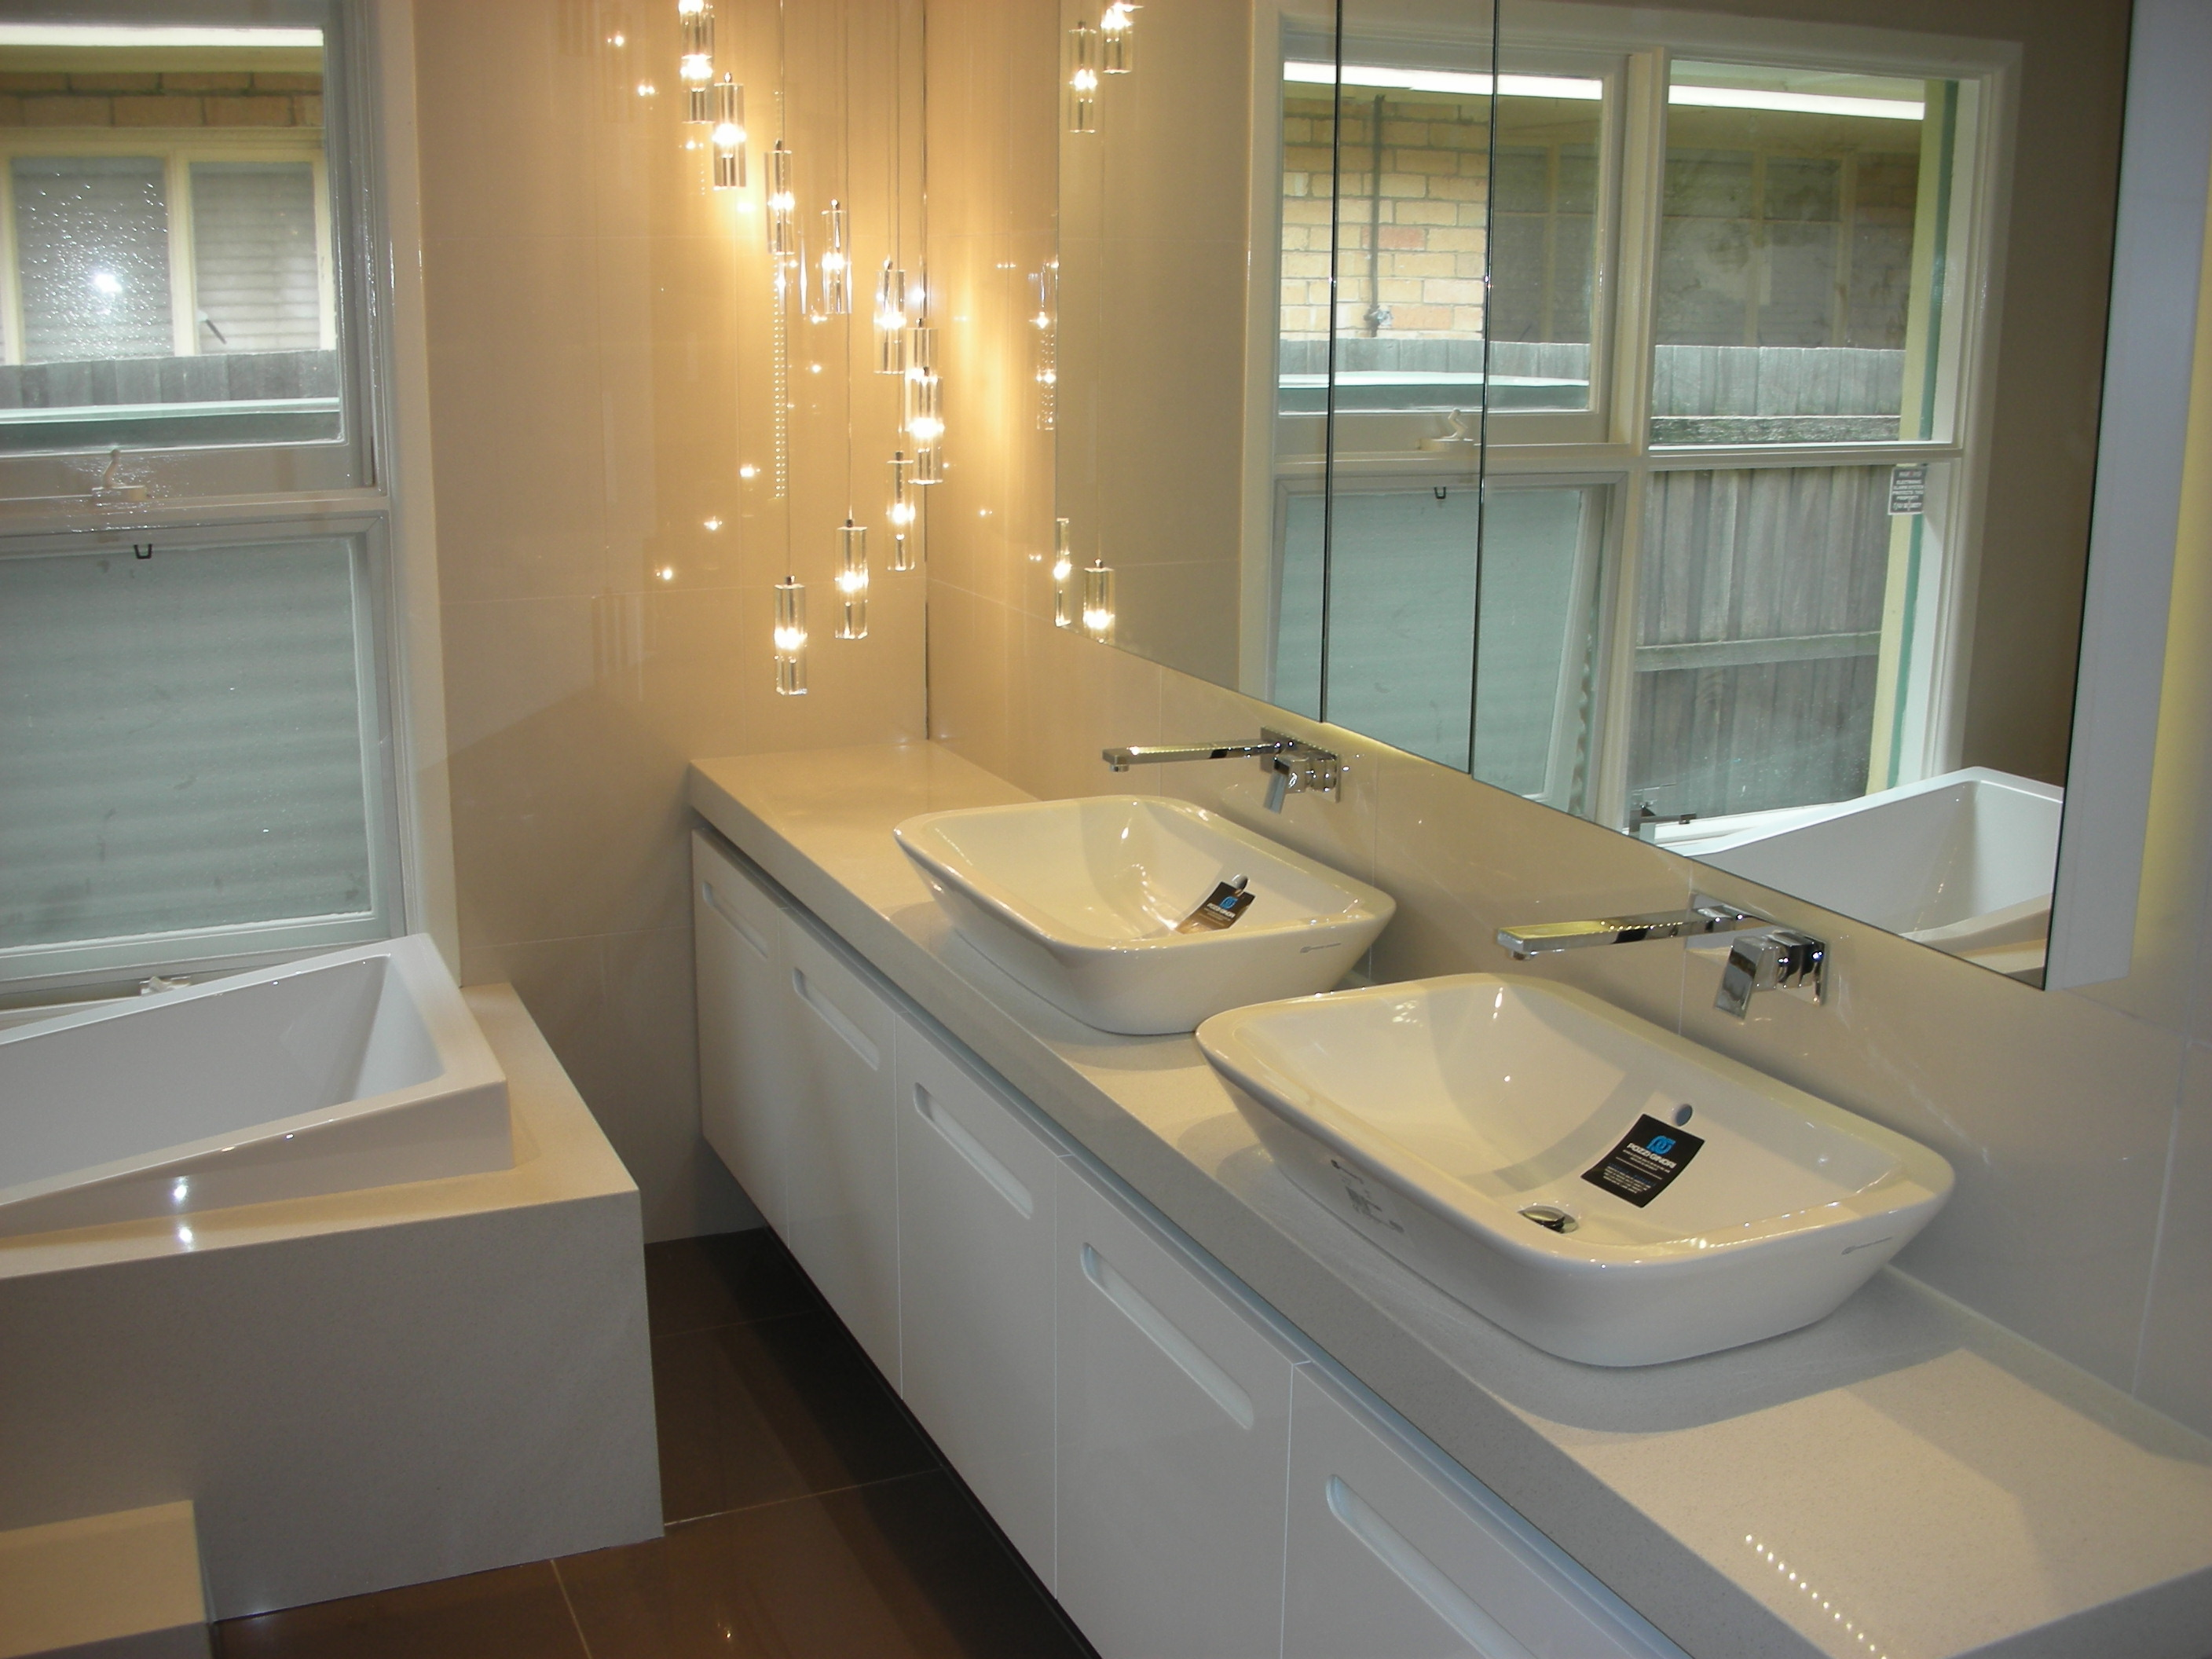 Cost Of Average Bathroom Remodel average bathroom remodel cost - large and beautiful photos. photo